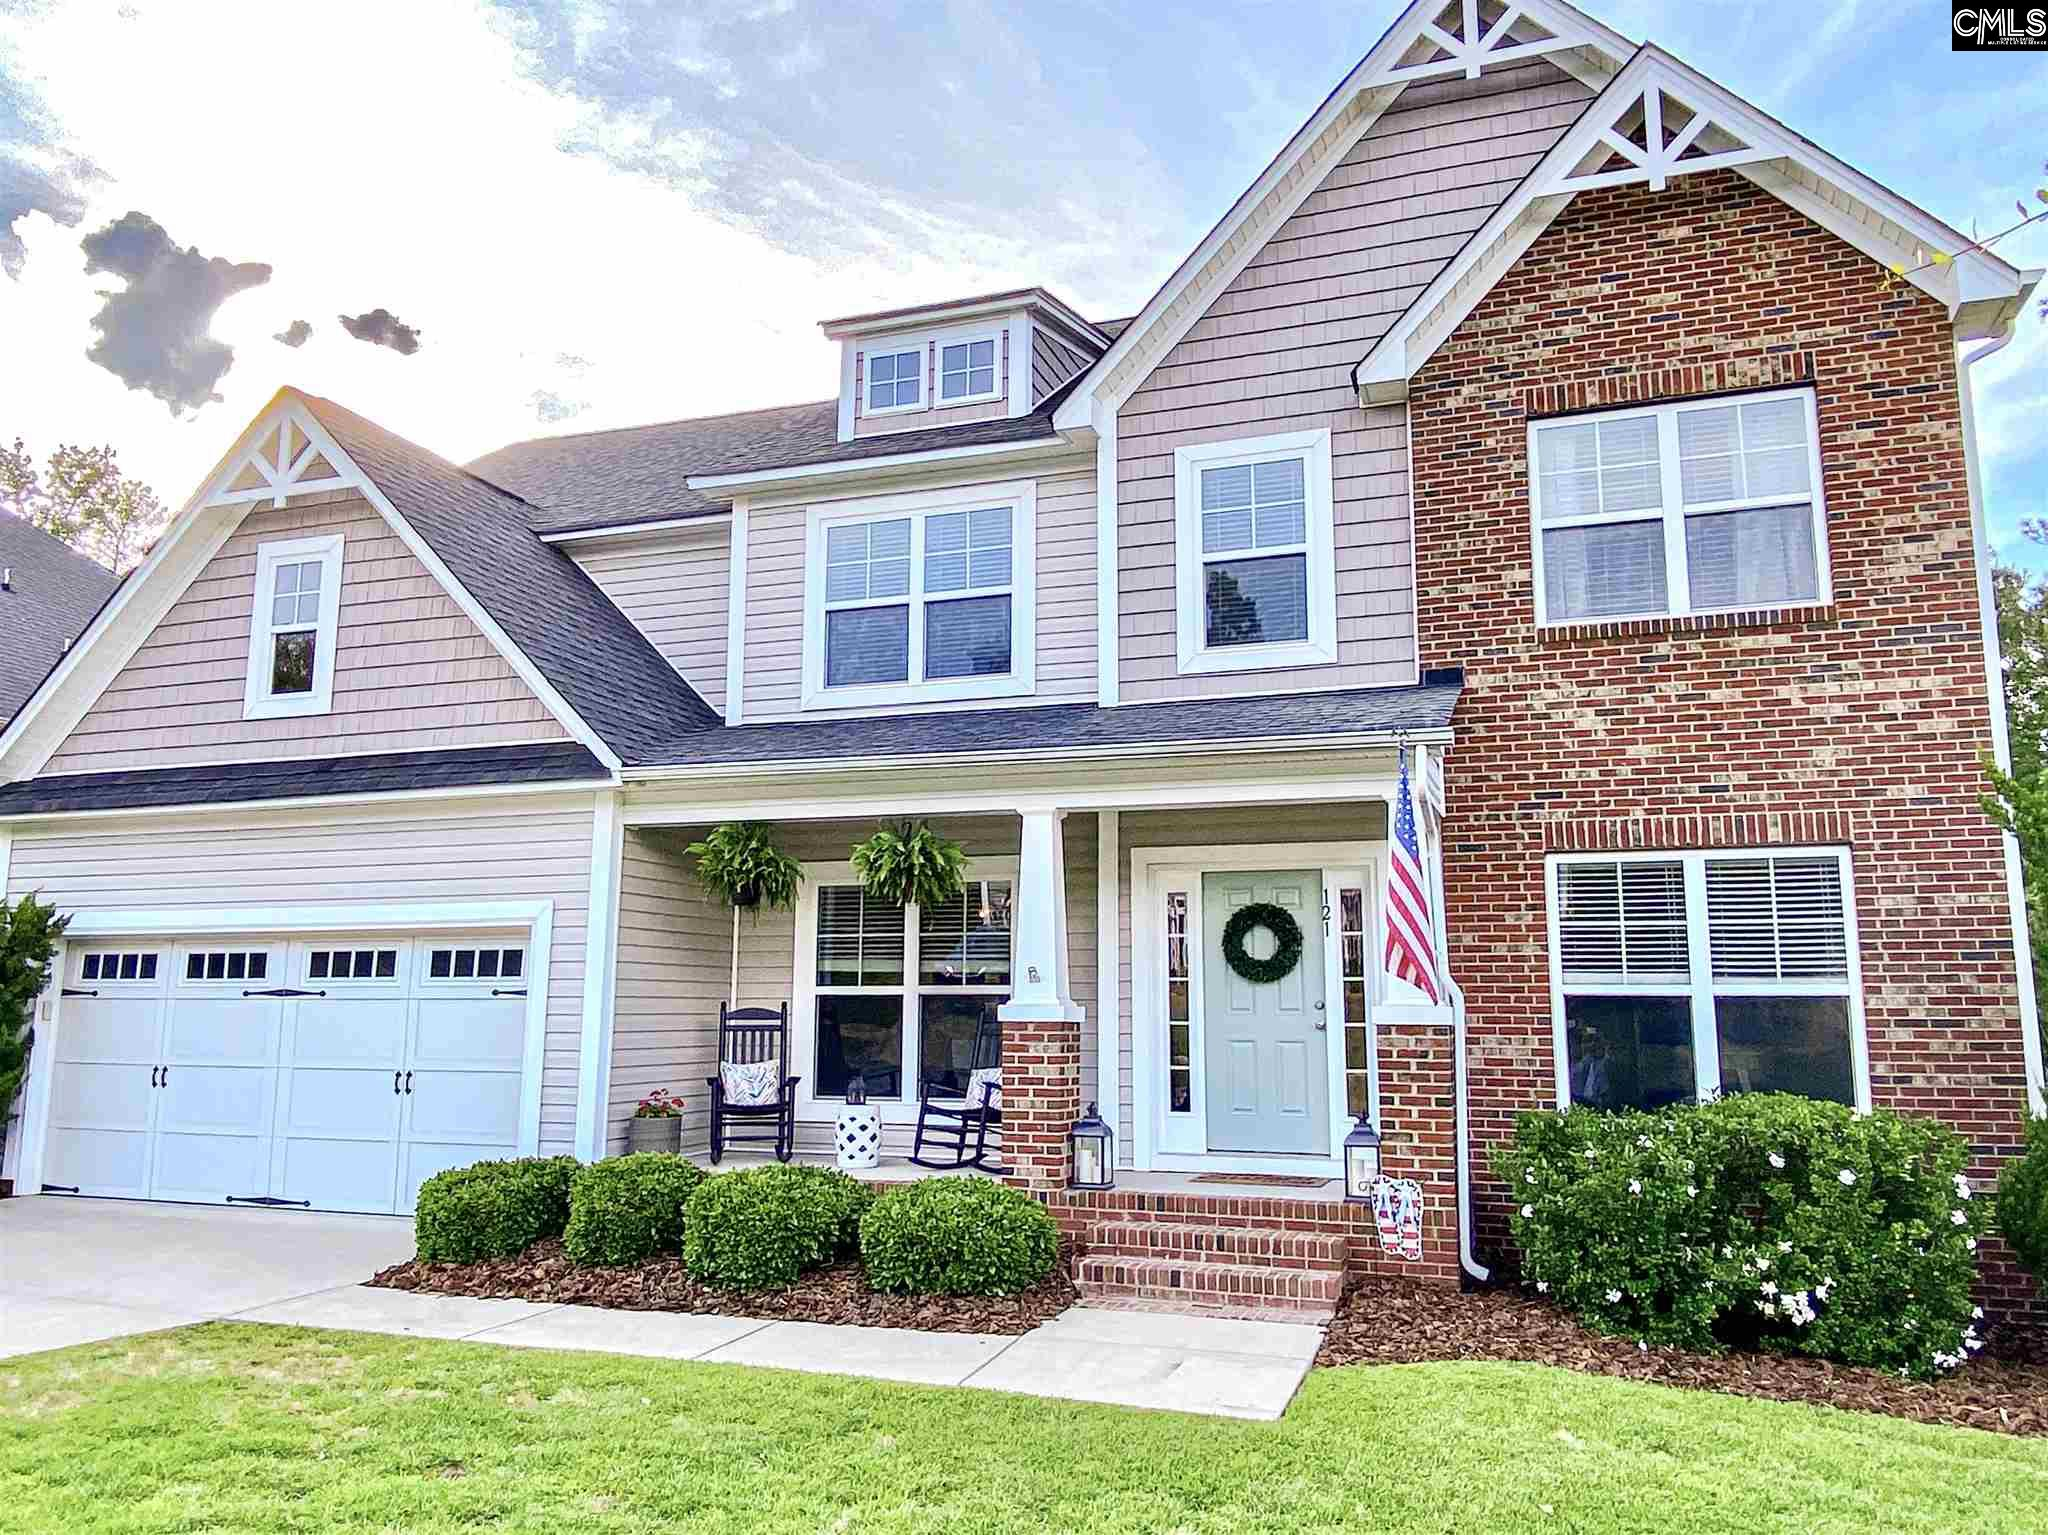 121 Montelena Lexington, SC 29072